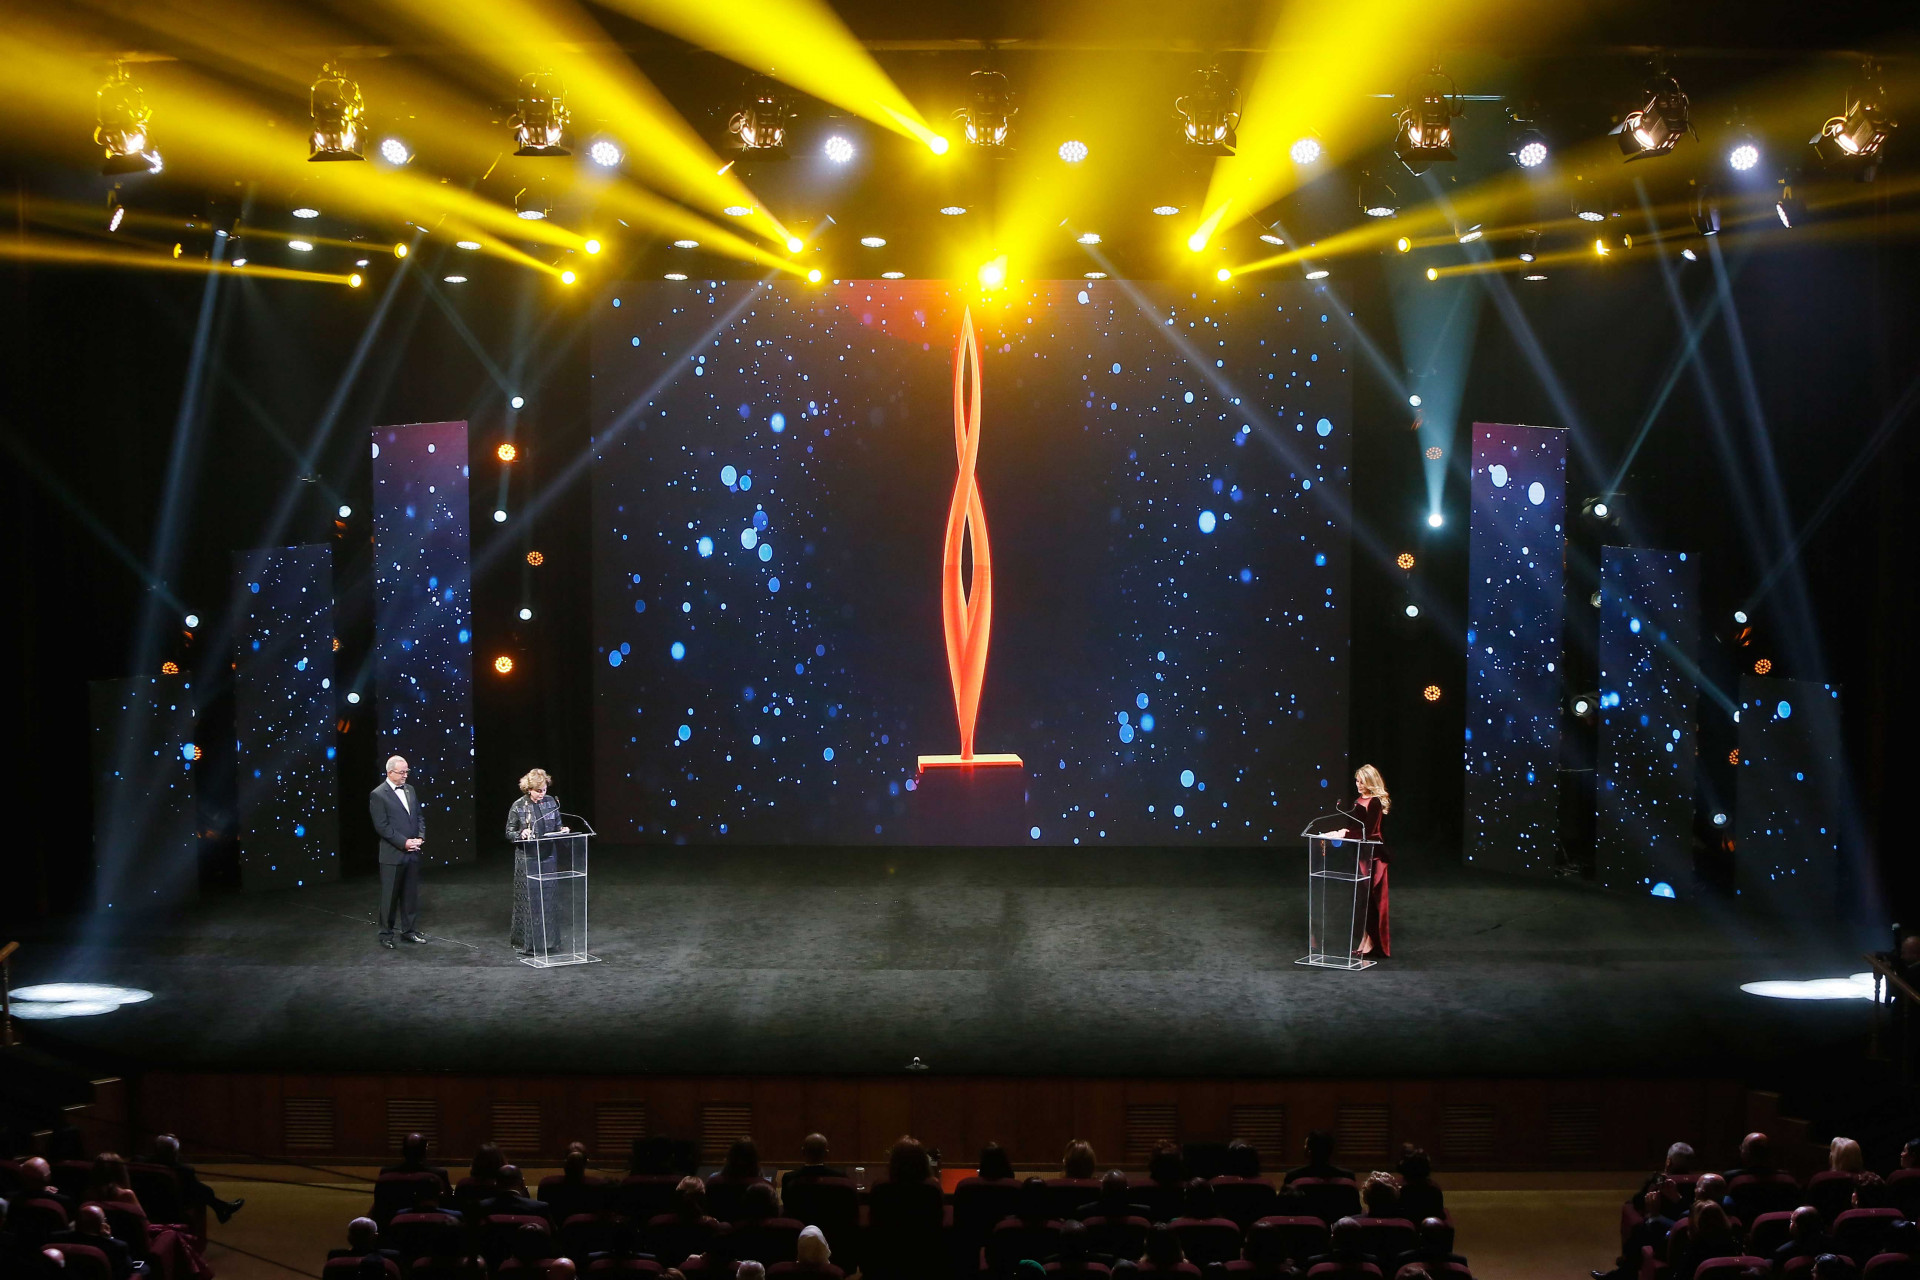 Awards Ceremony in Amman